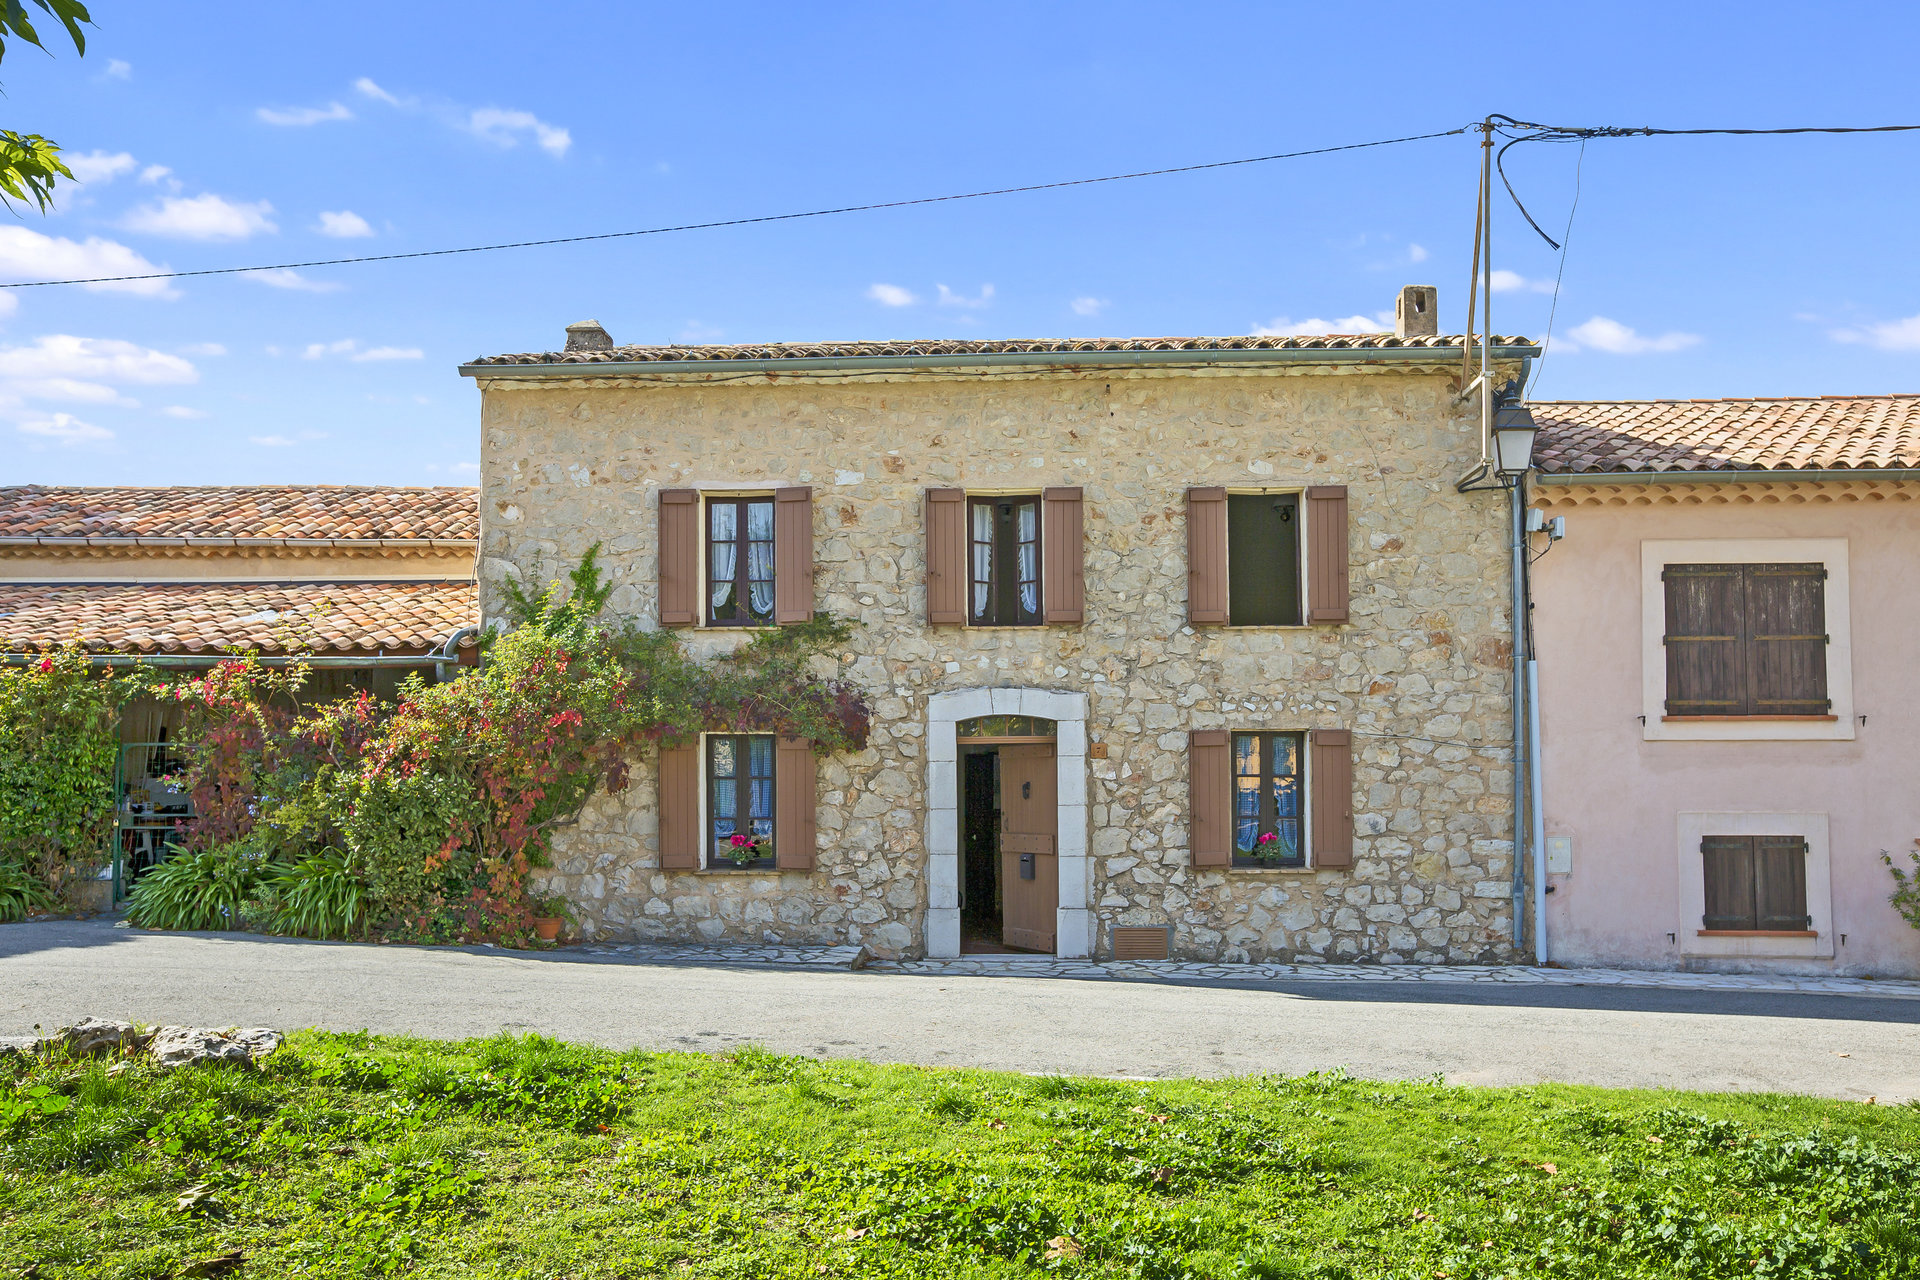 Saint-Cézaire: Beautiful and authentic village house with terrace, garage and breathtaking view